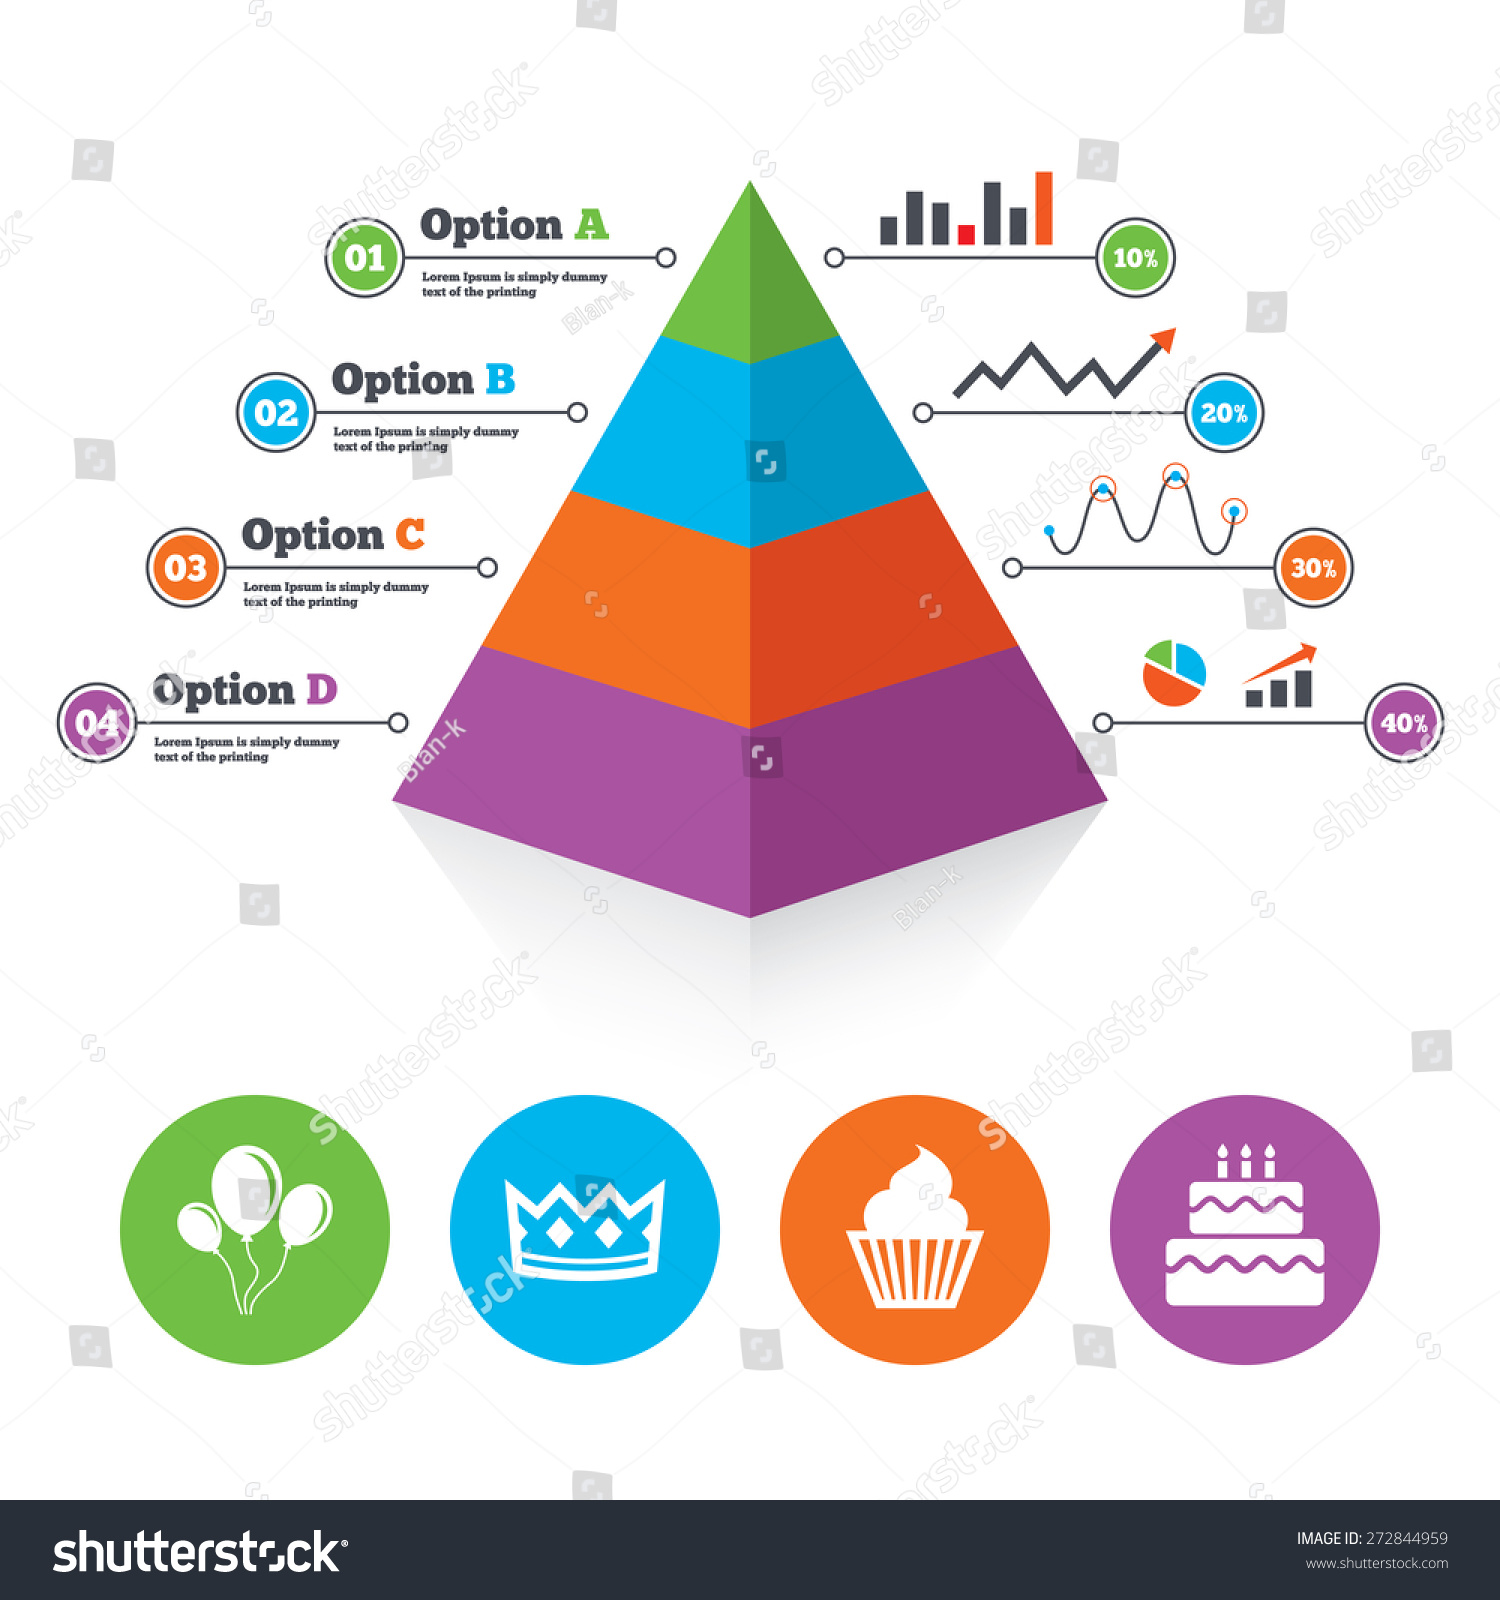 Pyramid chart template birthday crown party stock vector 272844959 pyramid chart template birthday crown party icons cake and cupcake signs air balloons maxwellsz